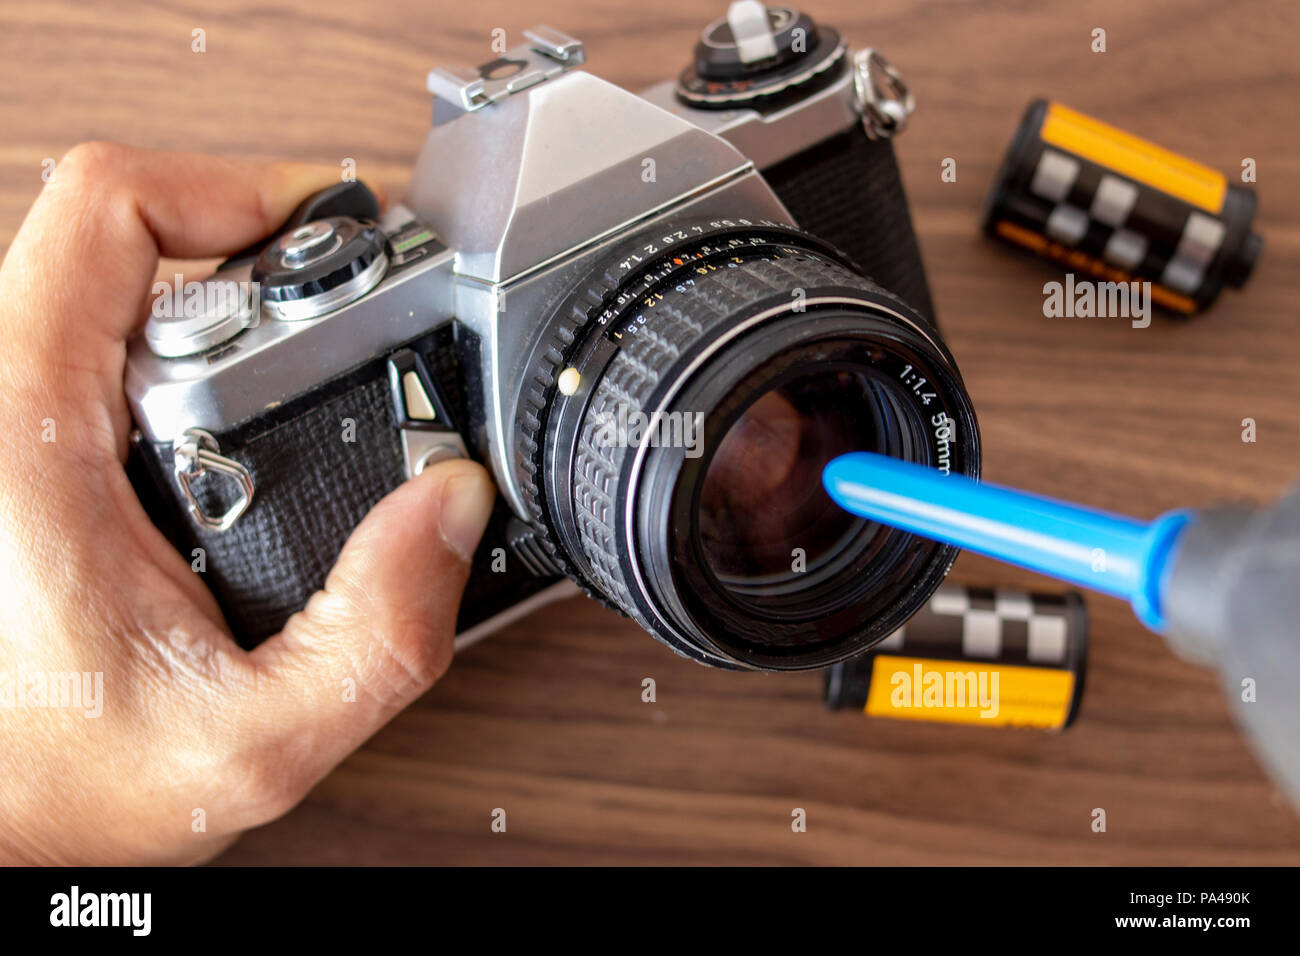 Performing a maintenance on a camera with tools - Stock Image